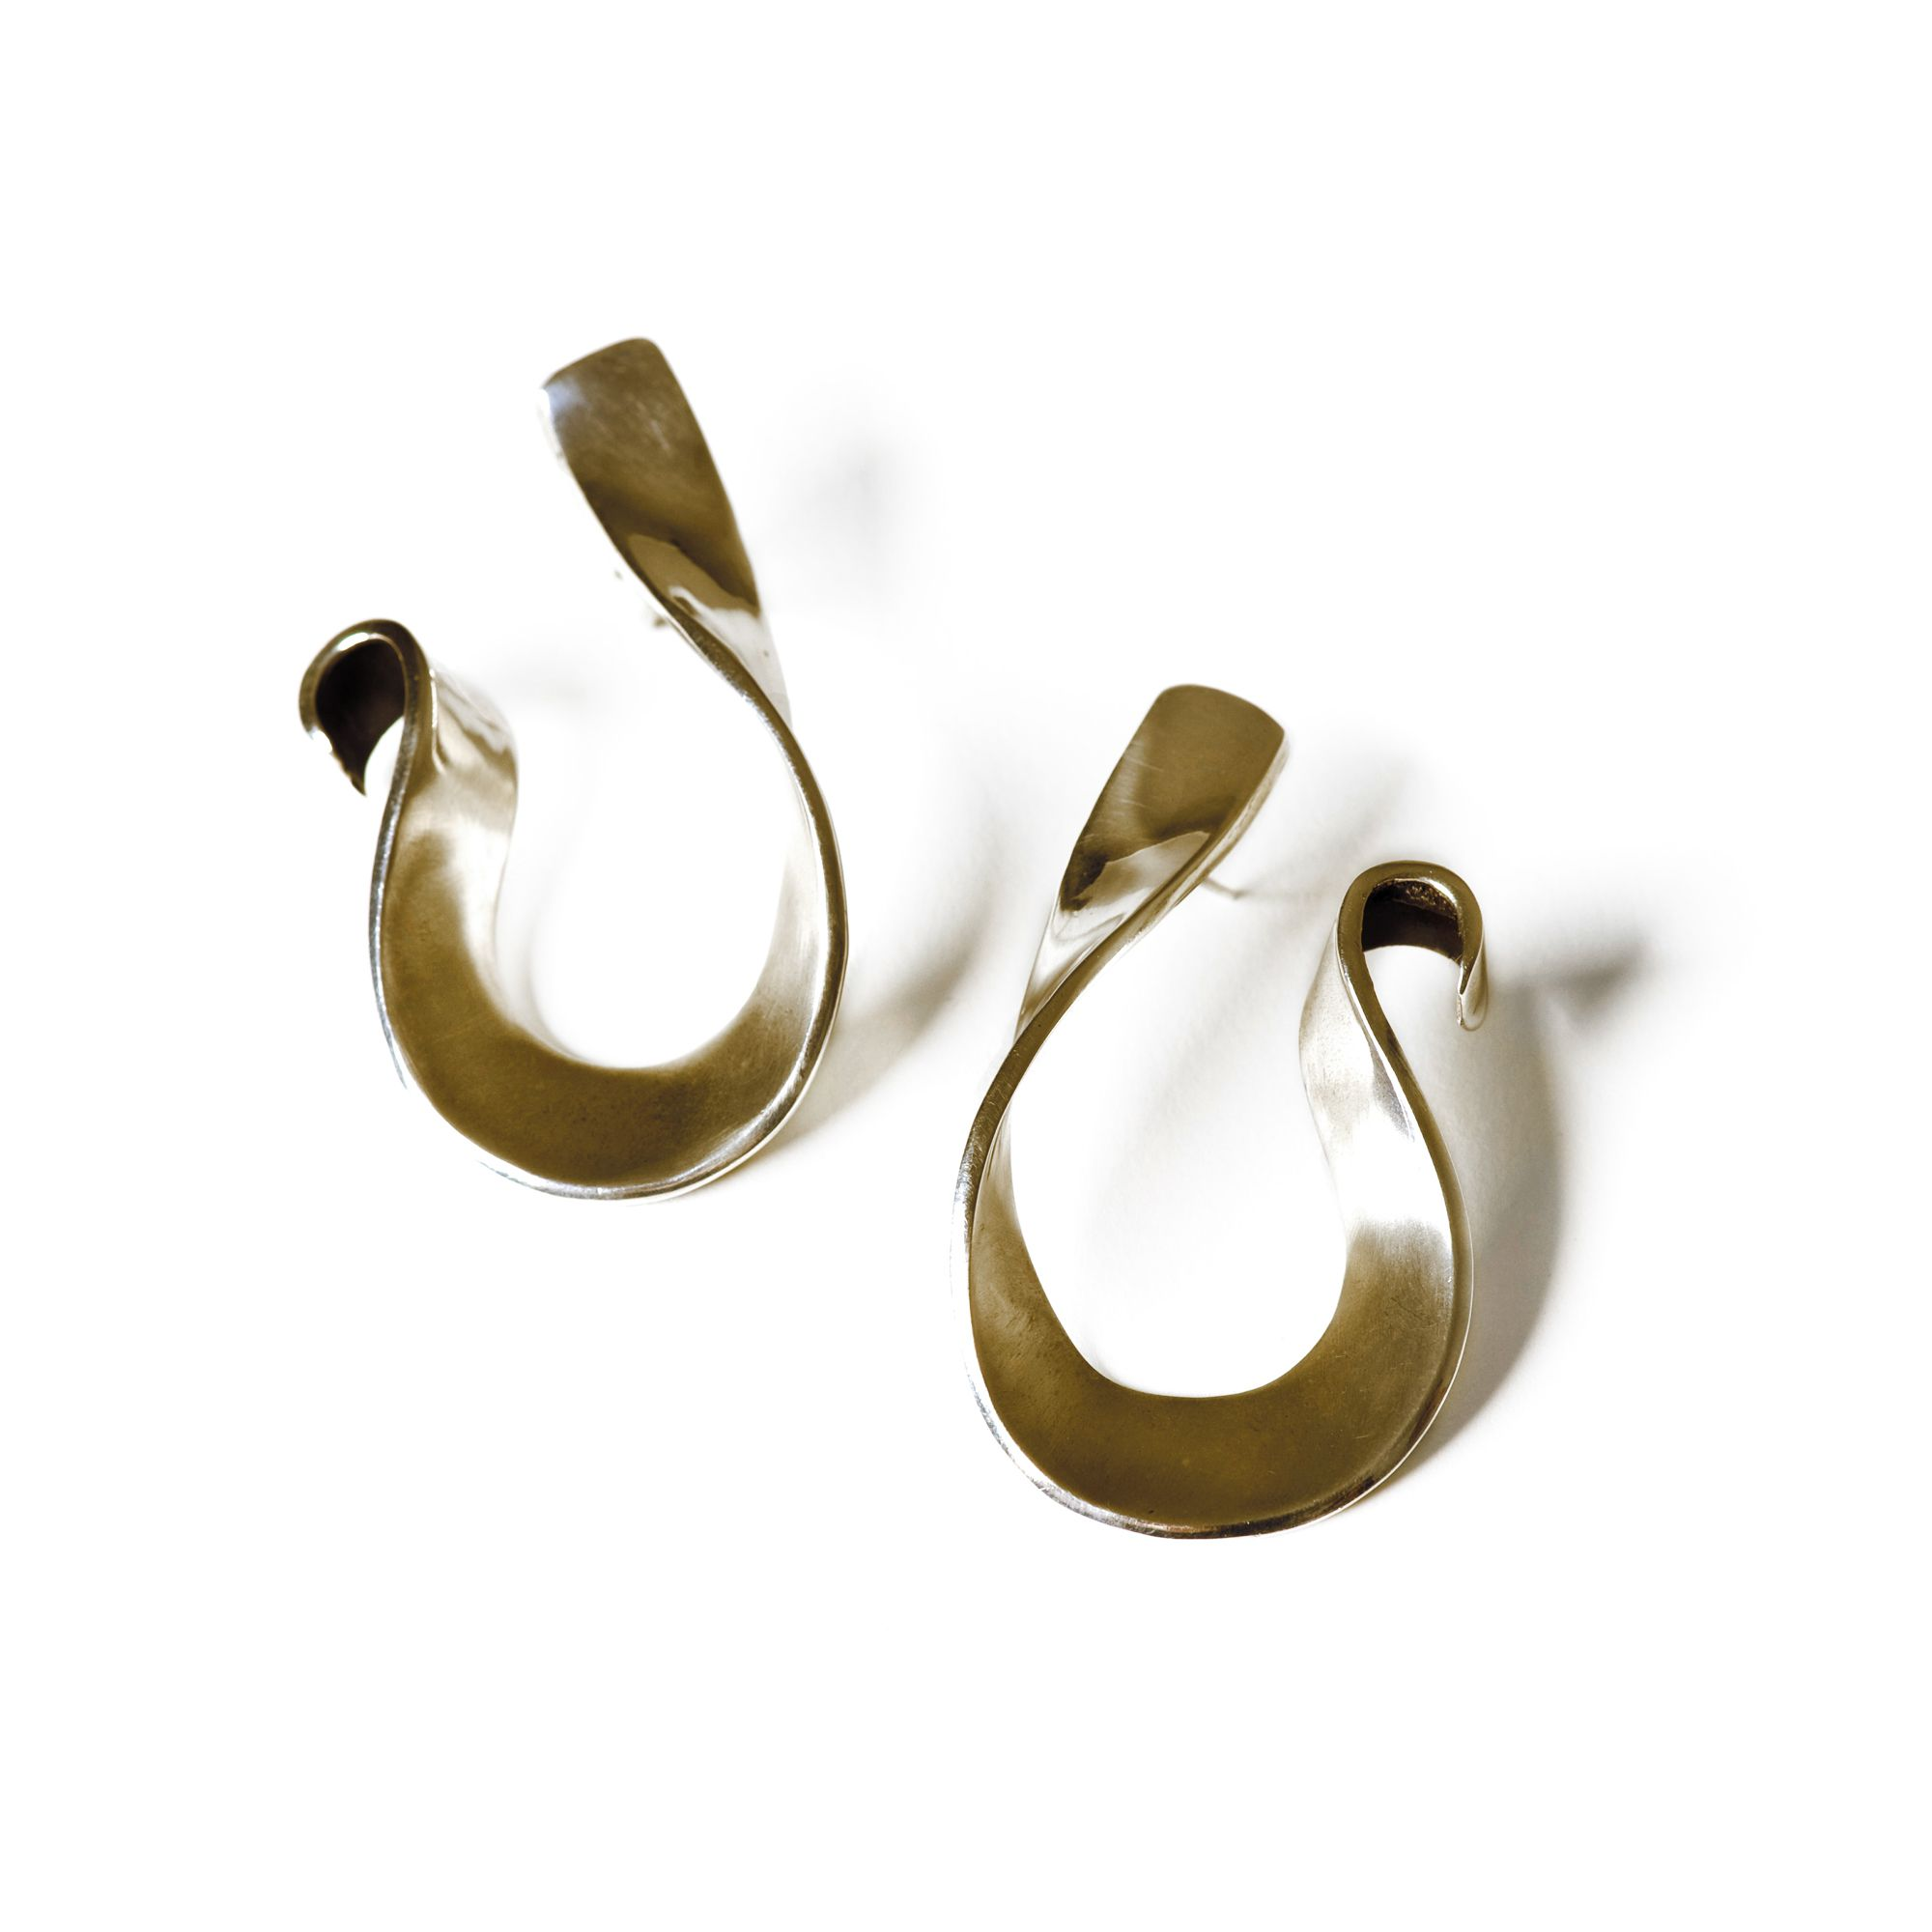 'Nastri' earrings Earrings in bronze